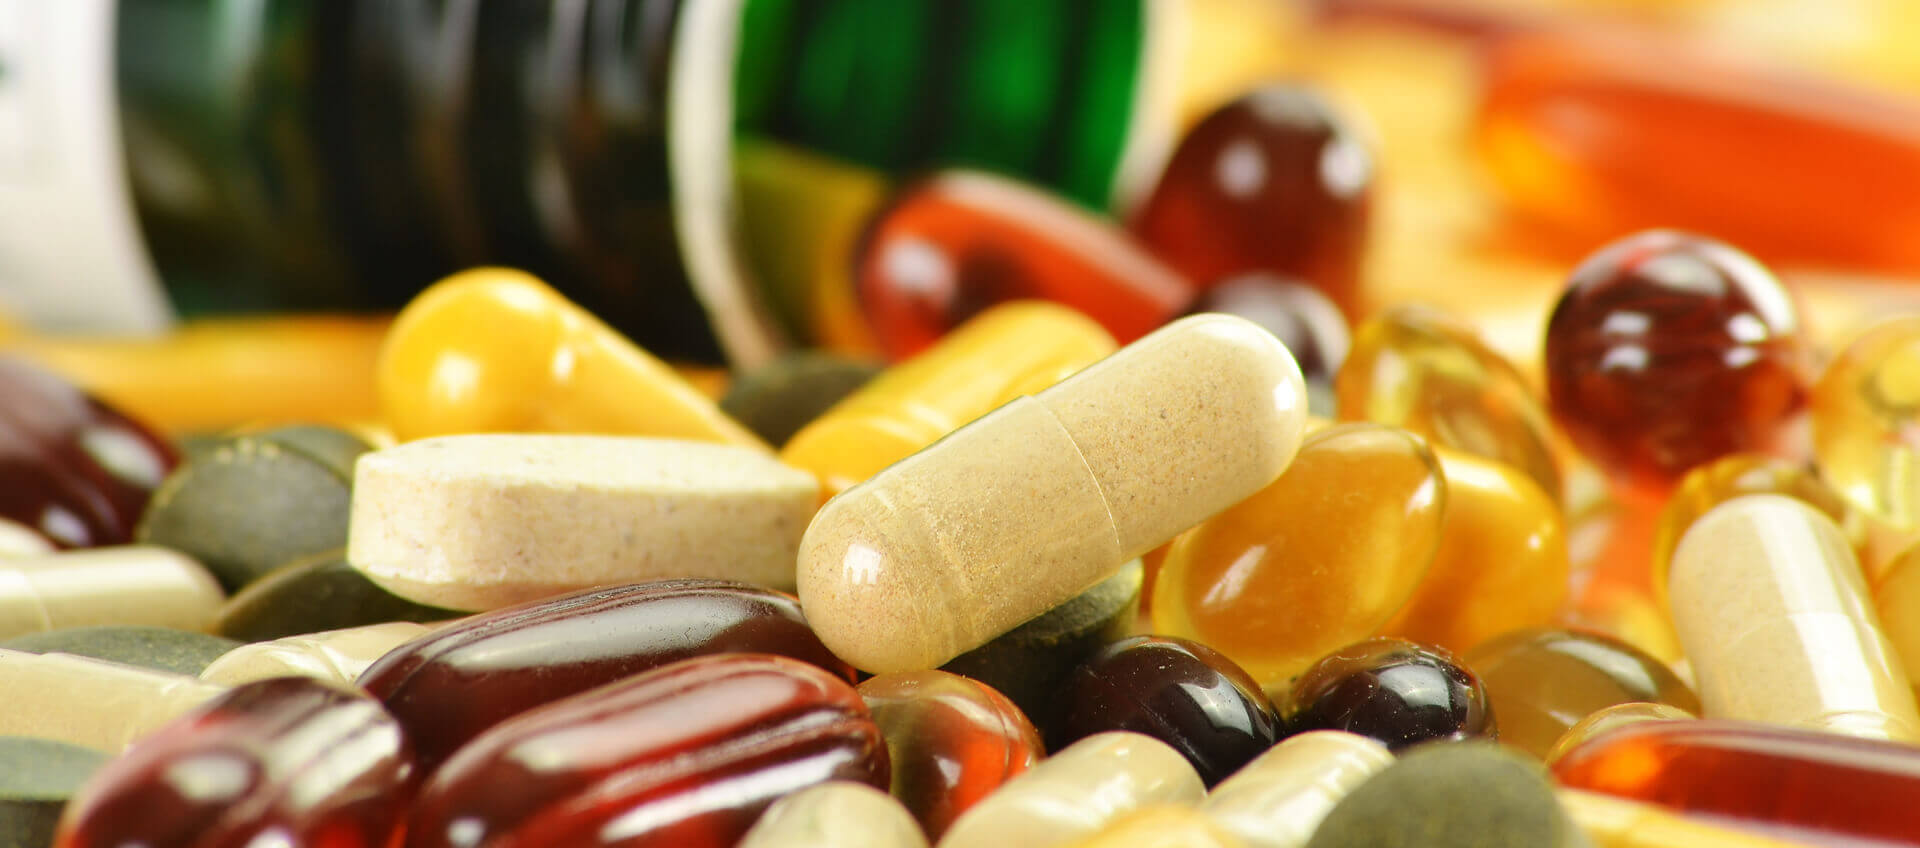 Dietary Supplements: What To Look For?